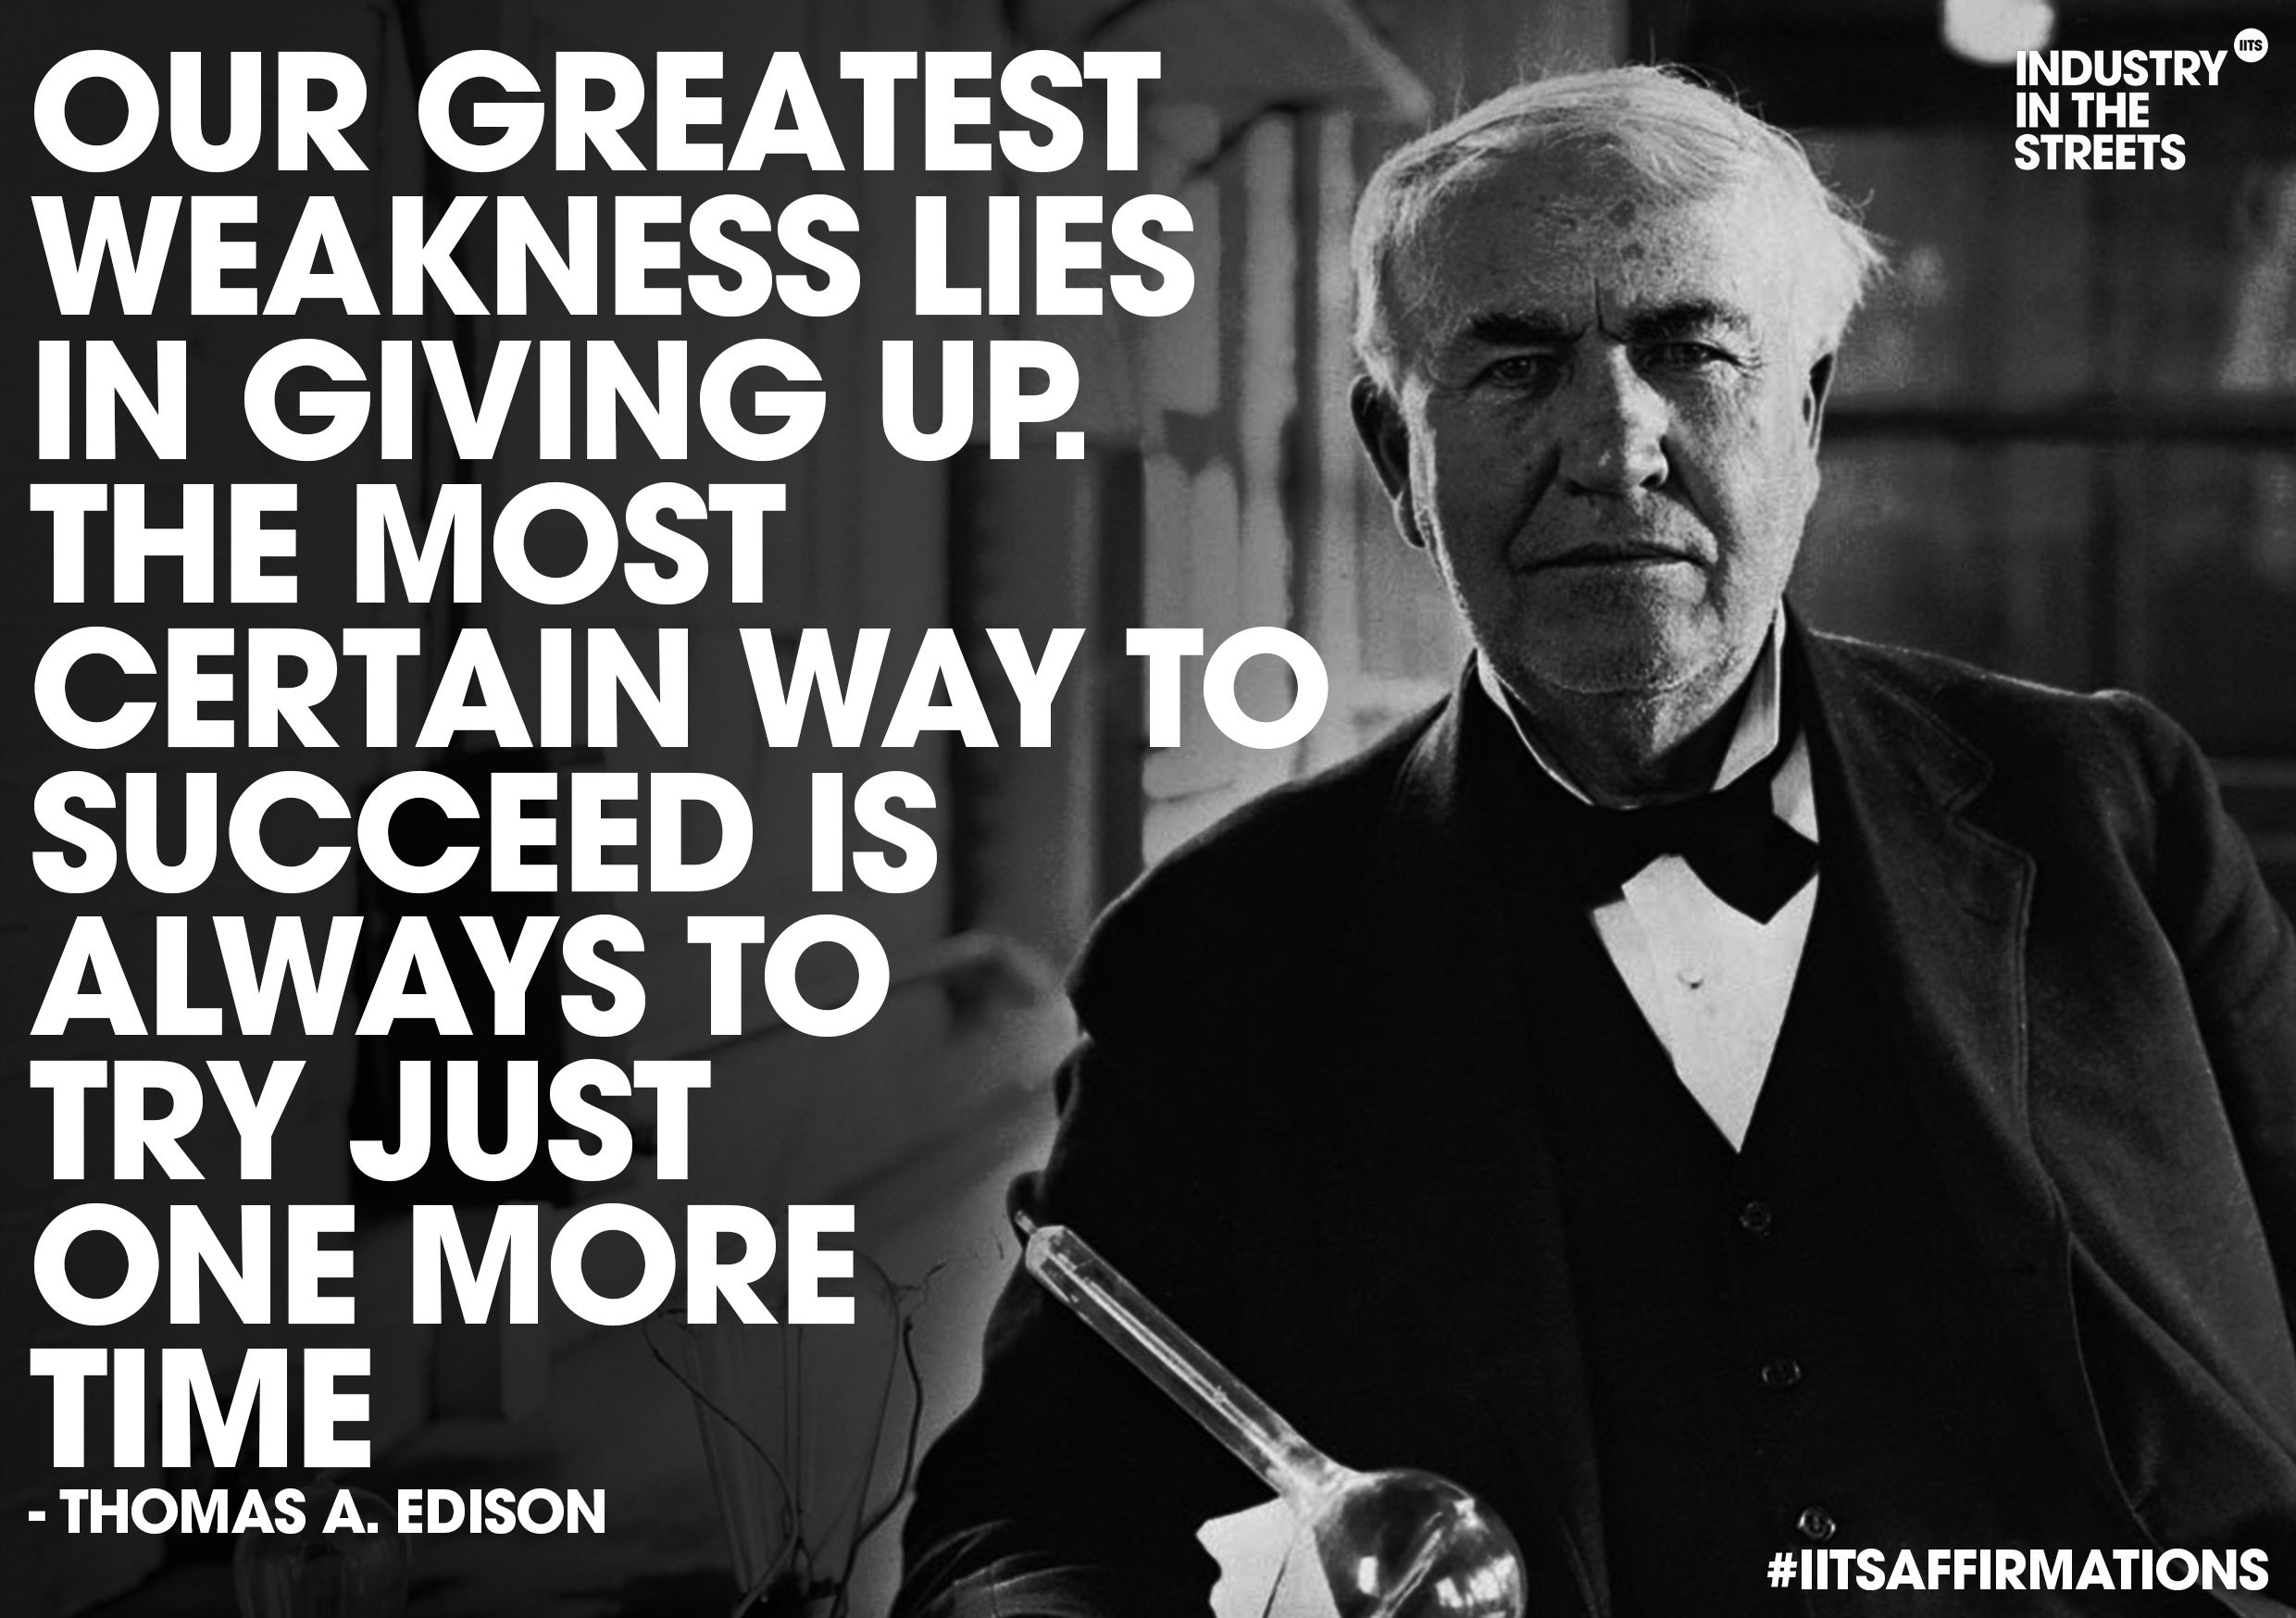 """a biography of thomas edison the scientist Thomas edison was born february 11, 1847, in milan, ohio he was nicknamed """"al"""" at an early age at age 11, edison moved to michigan."""